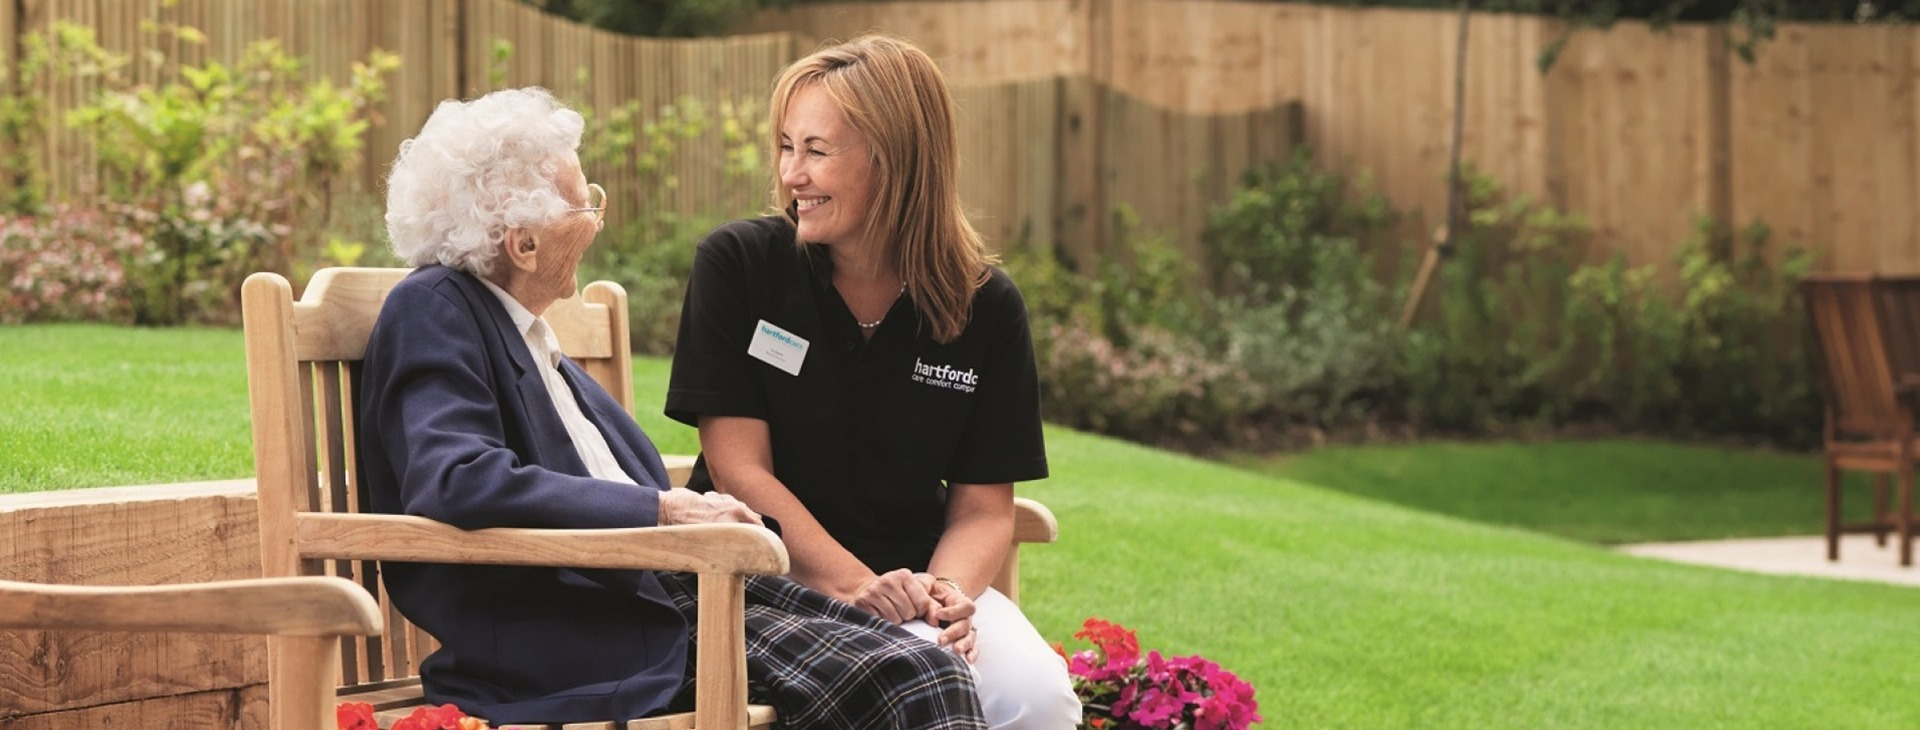 Care assistant and patient chatting on a bench